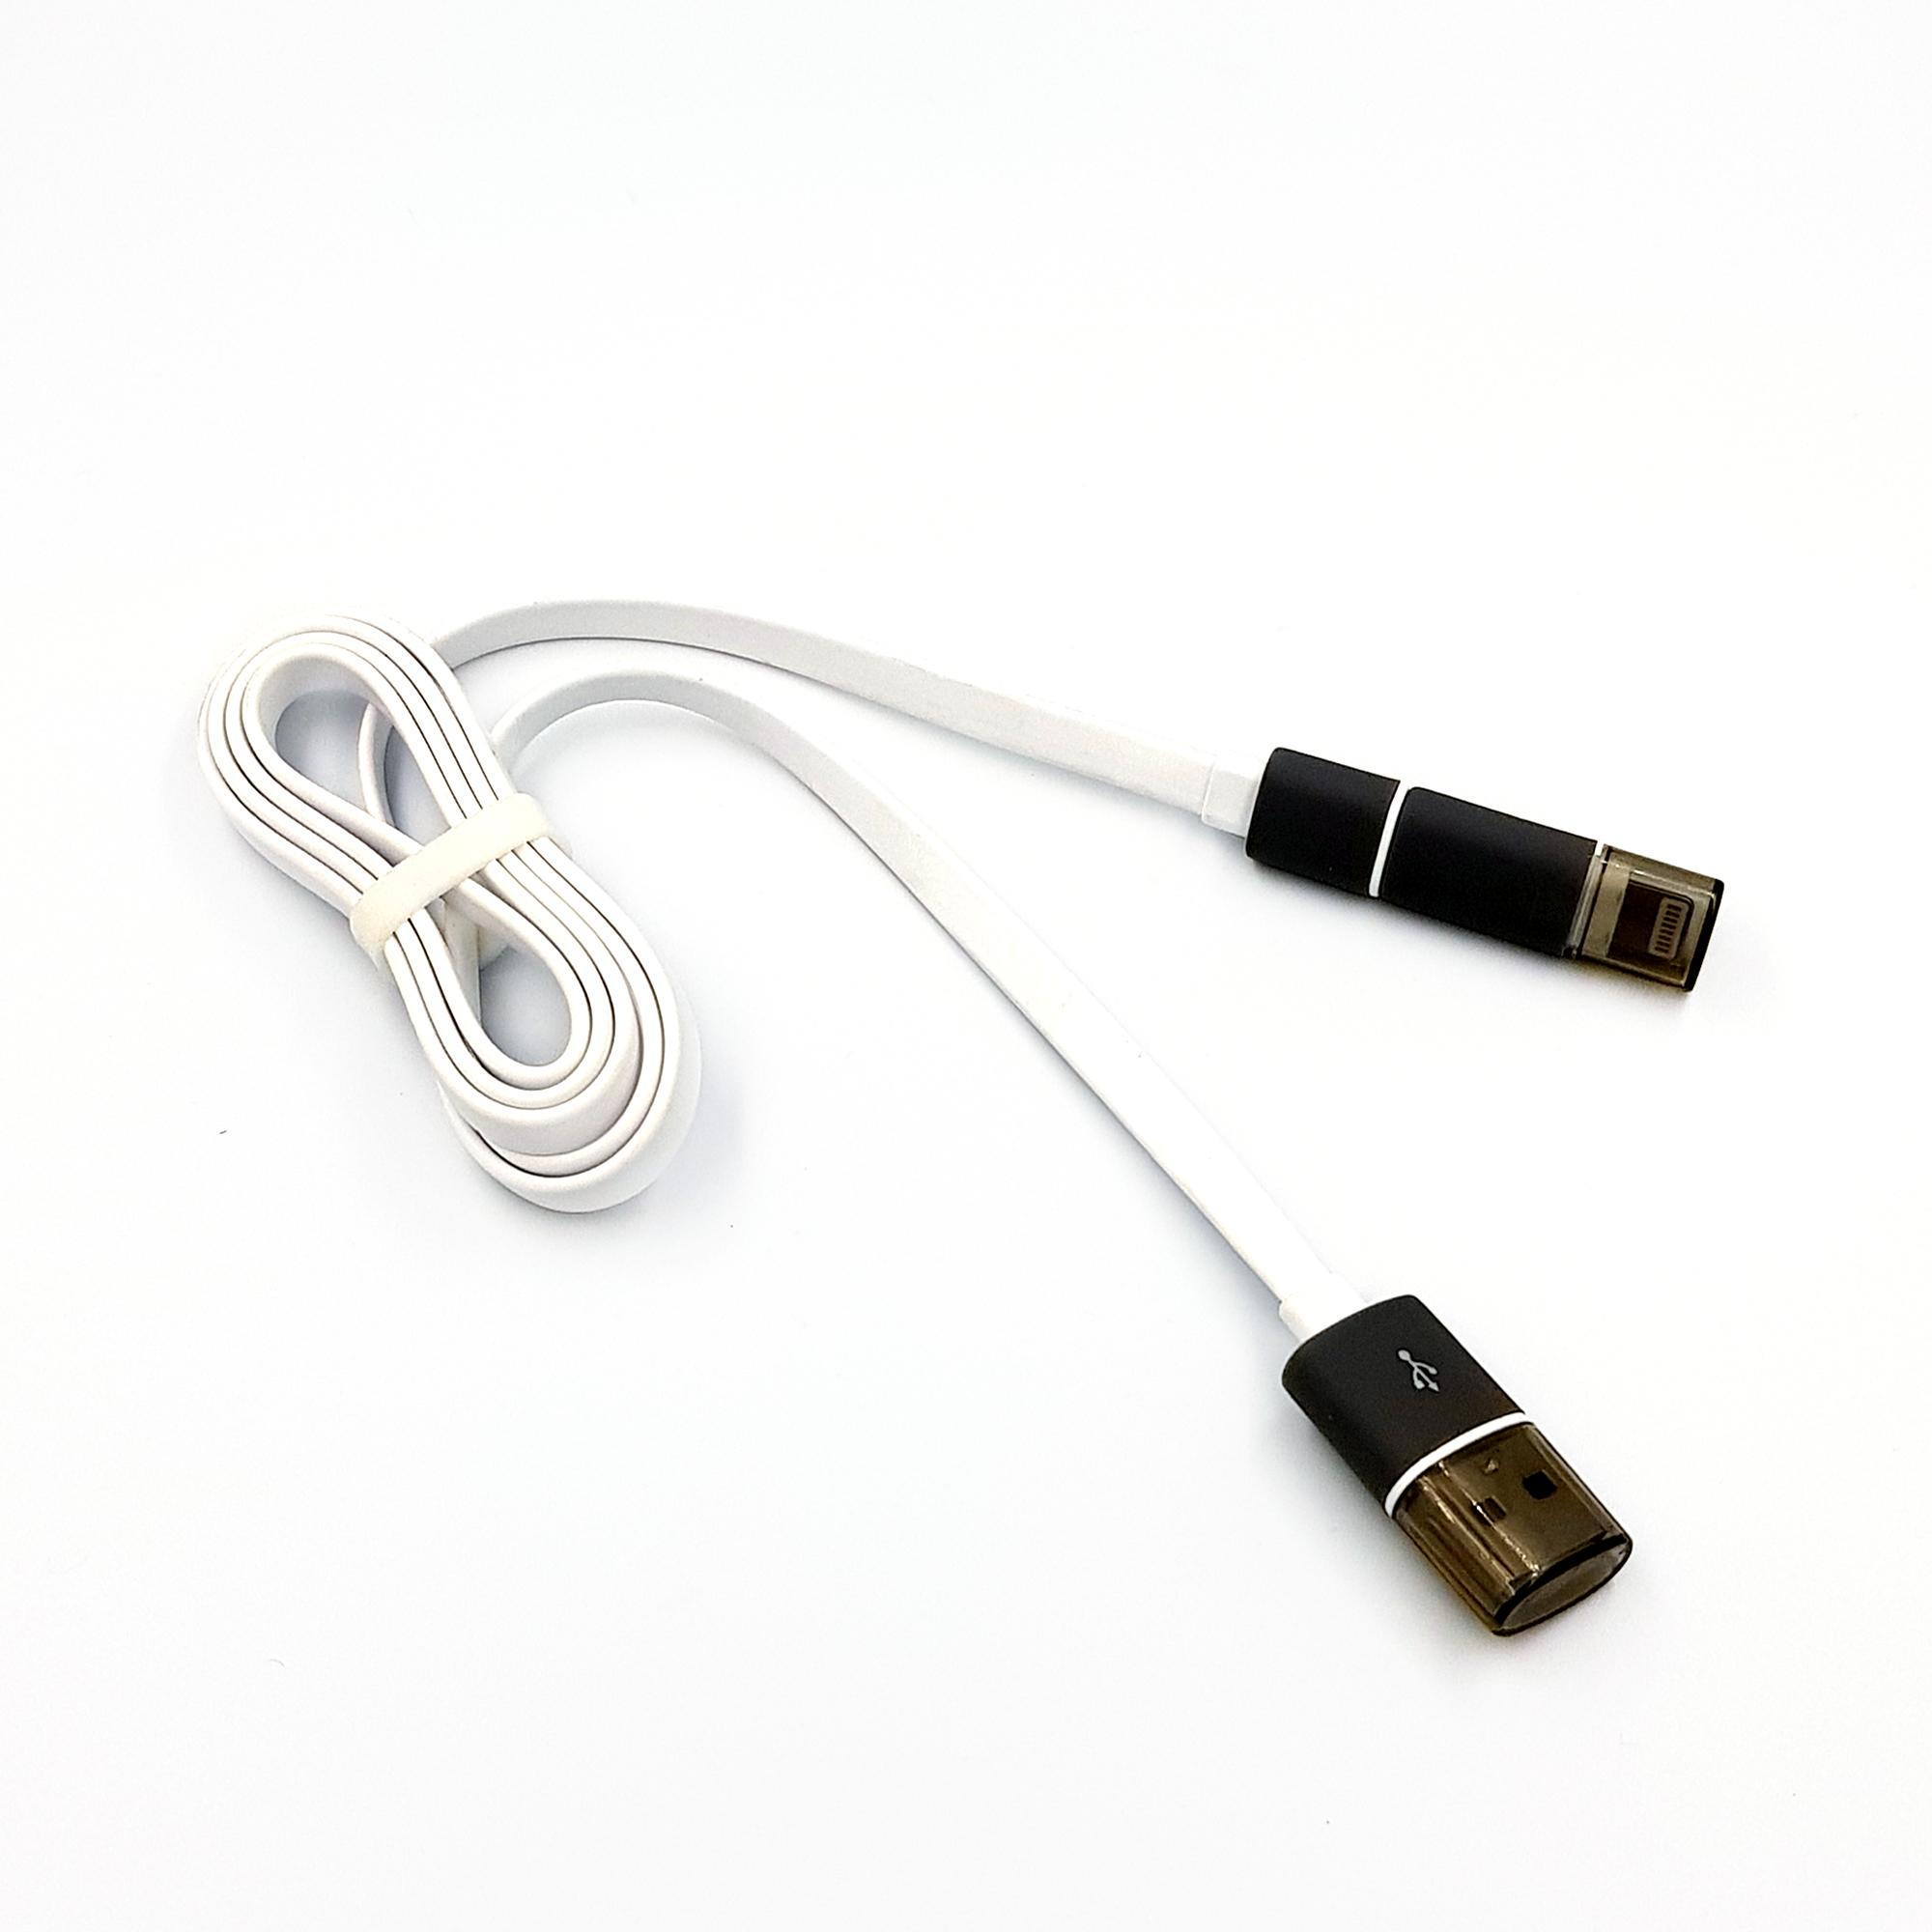 LEEKINS LKN-304 1m Quick Cable for iPhone and Samsung